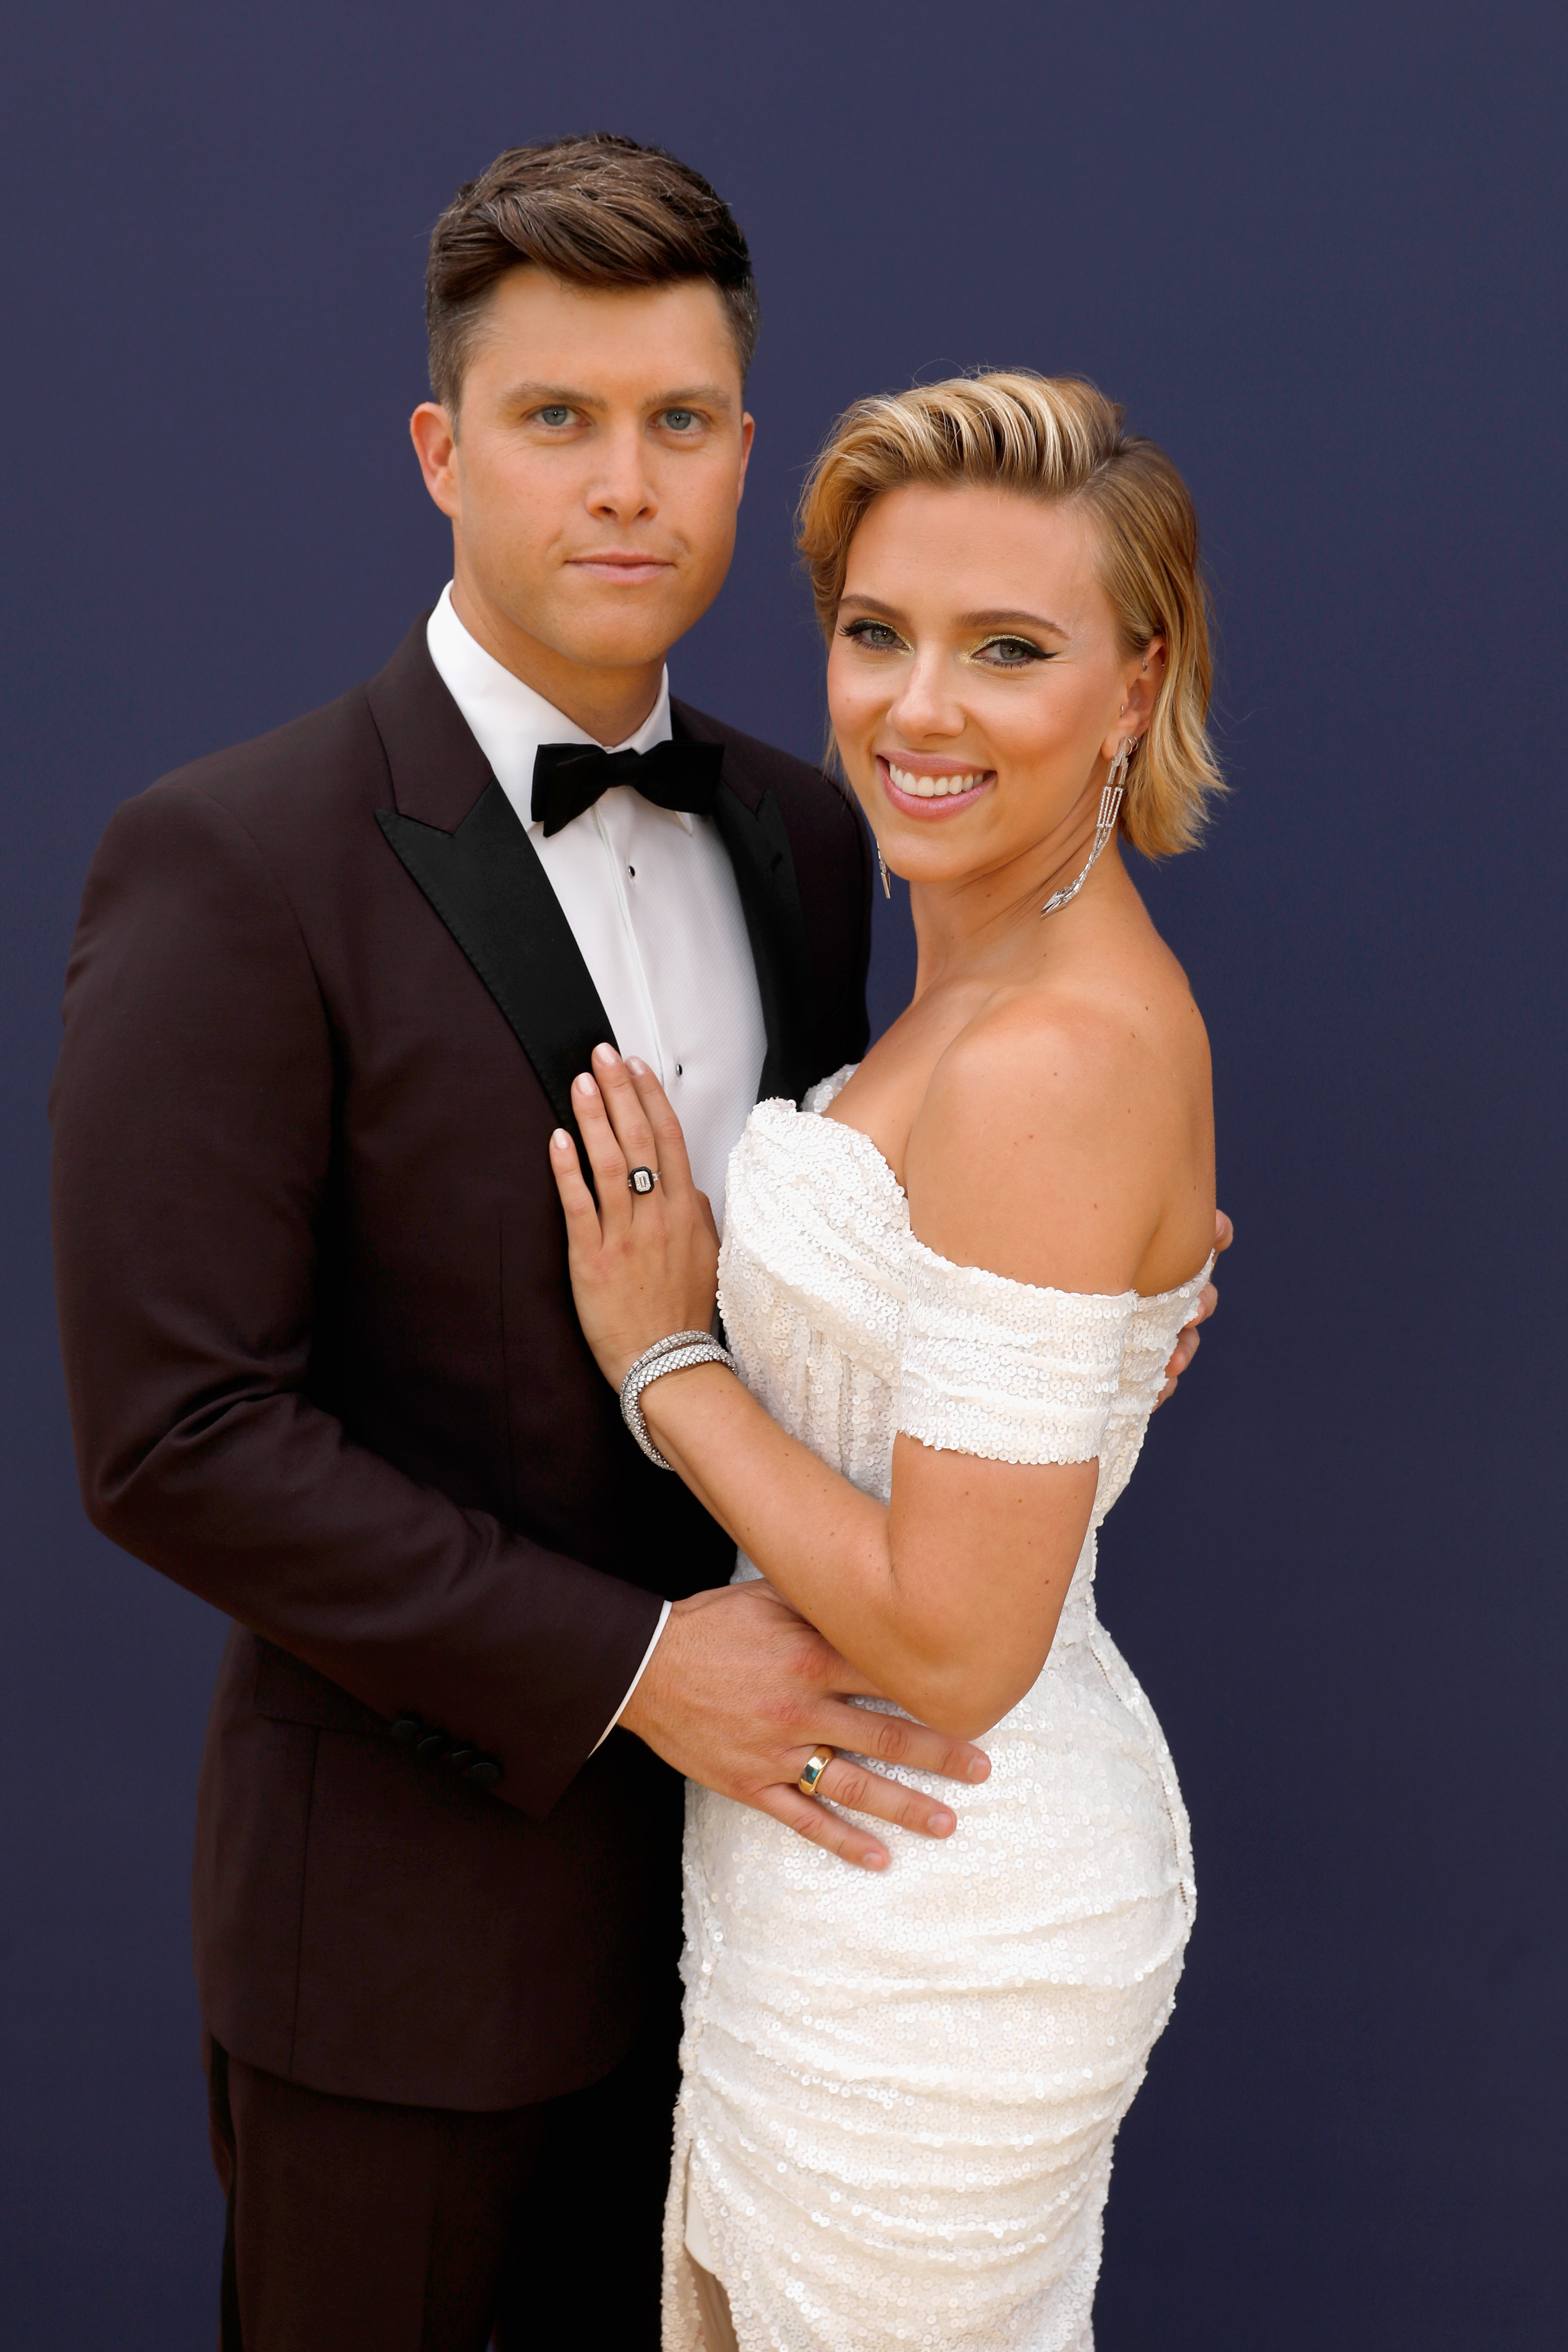 Scarlett Johansson And Colin Jost On Emmys 2018 Red Carpet